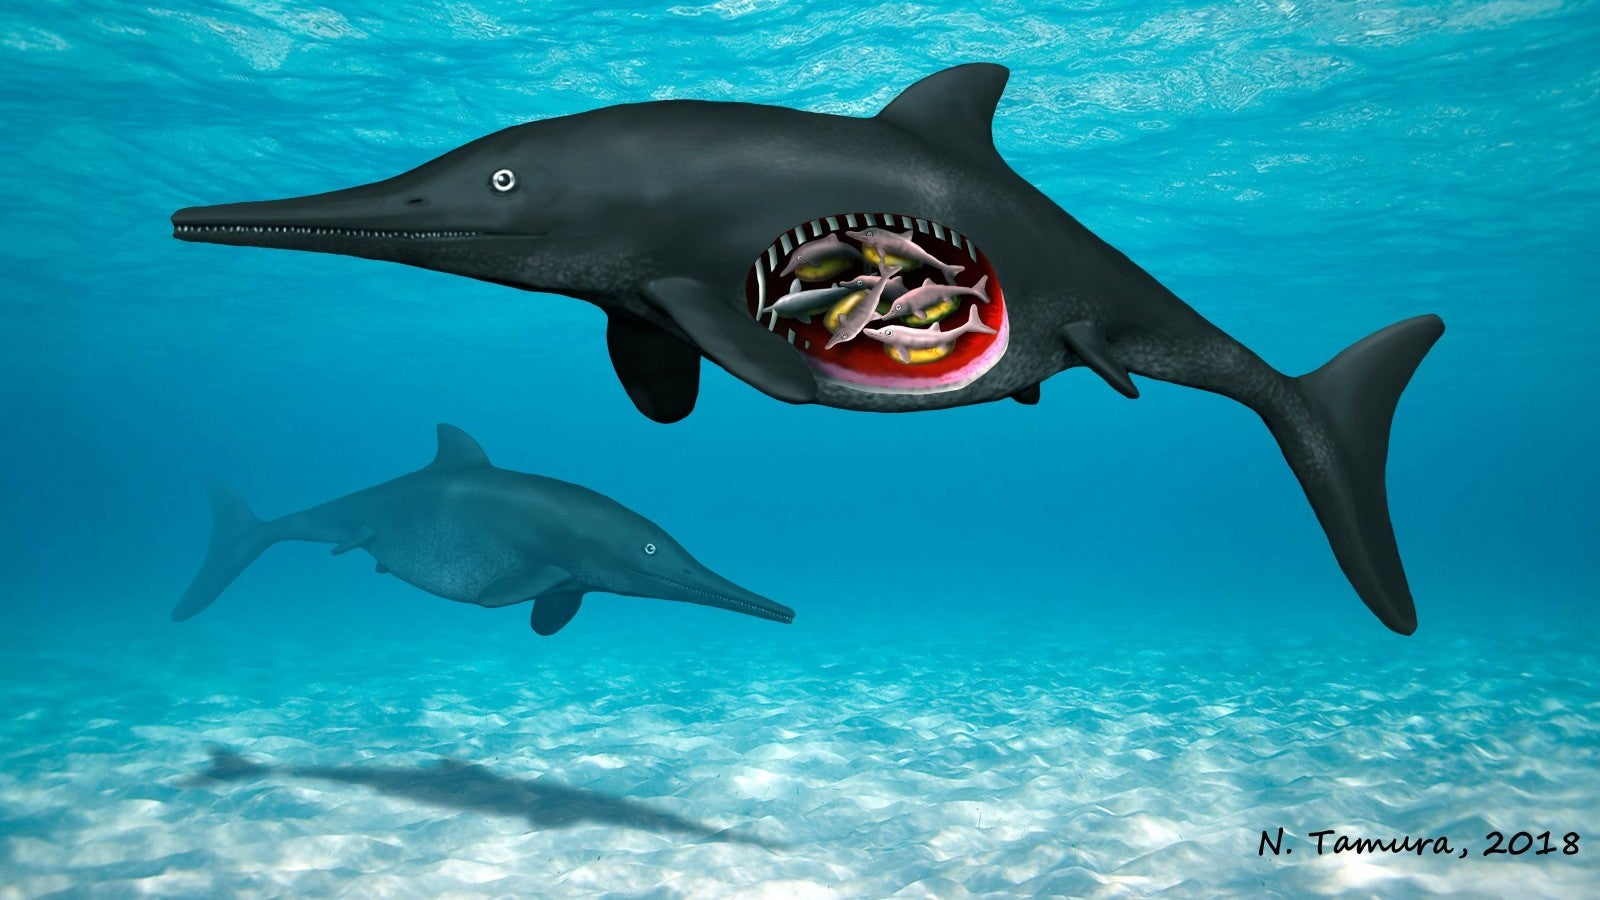 Fossilised Ichthyosaur Was Pregnant With Octuplets When She Died